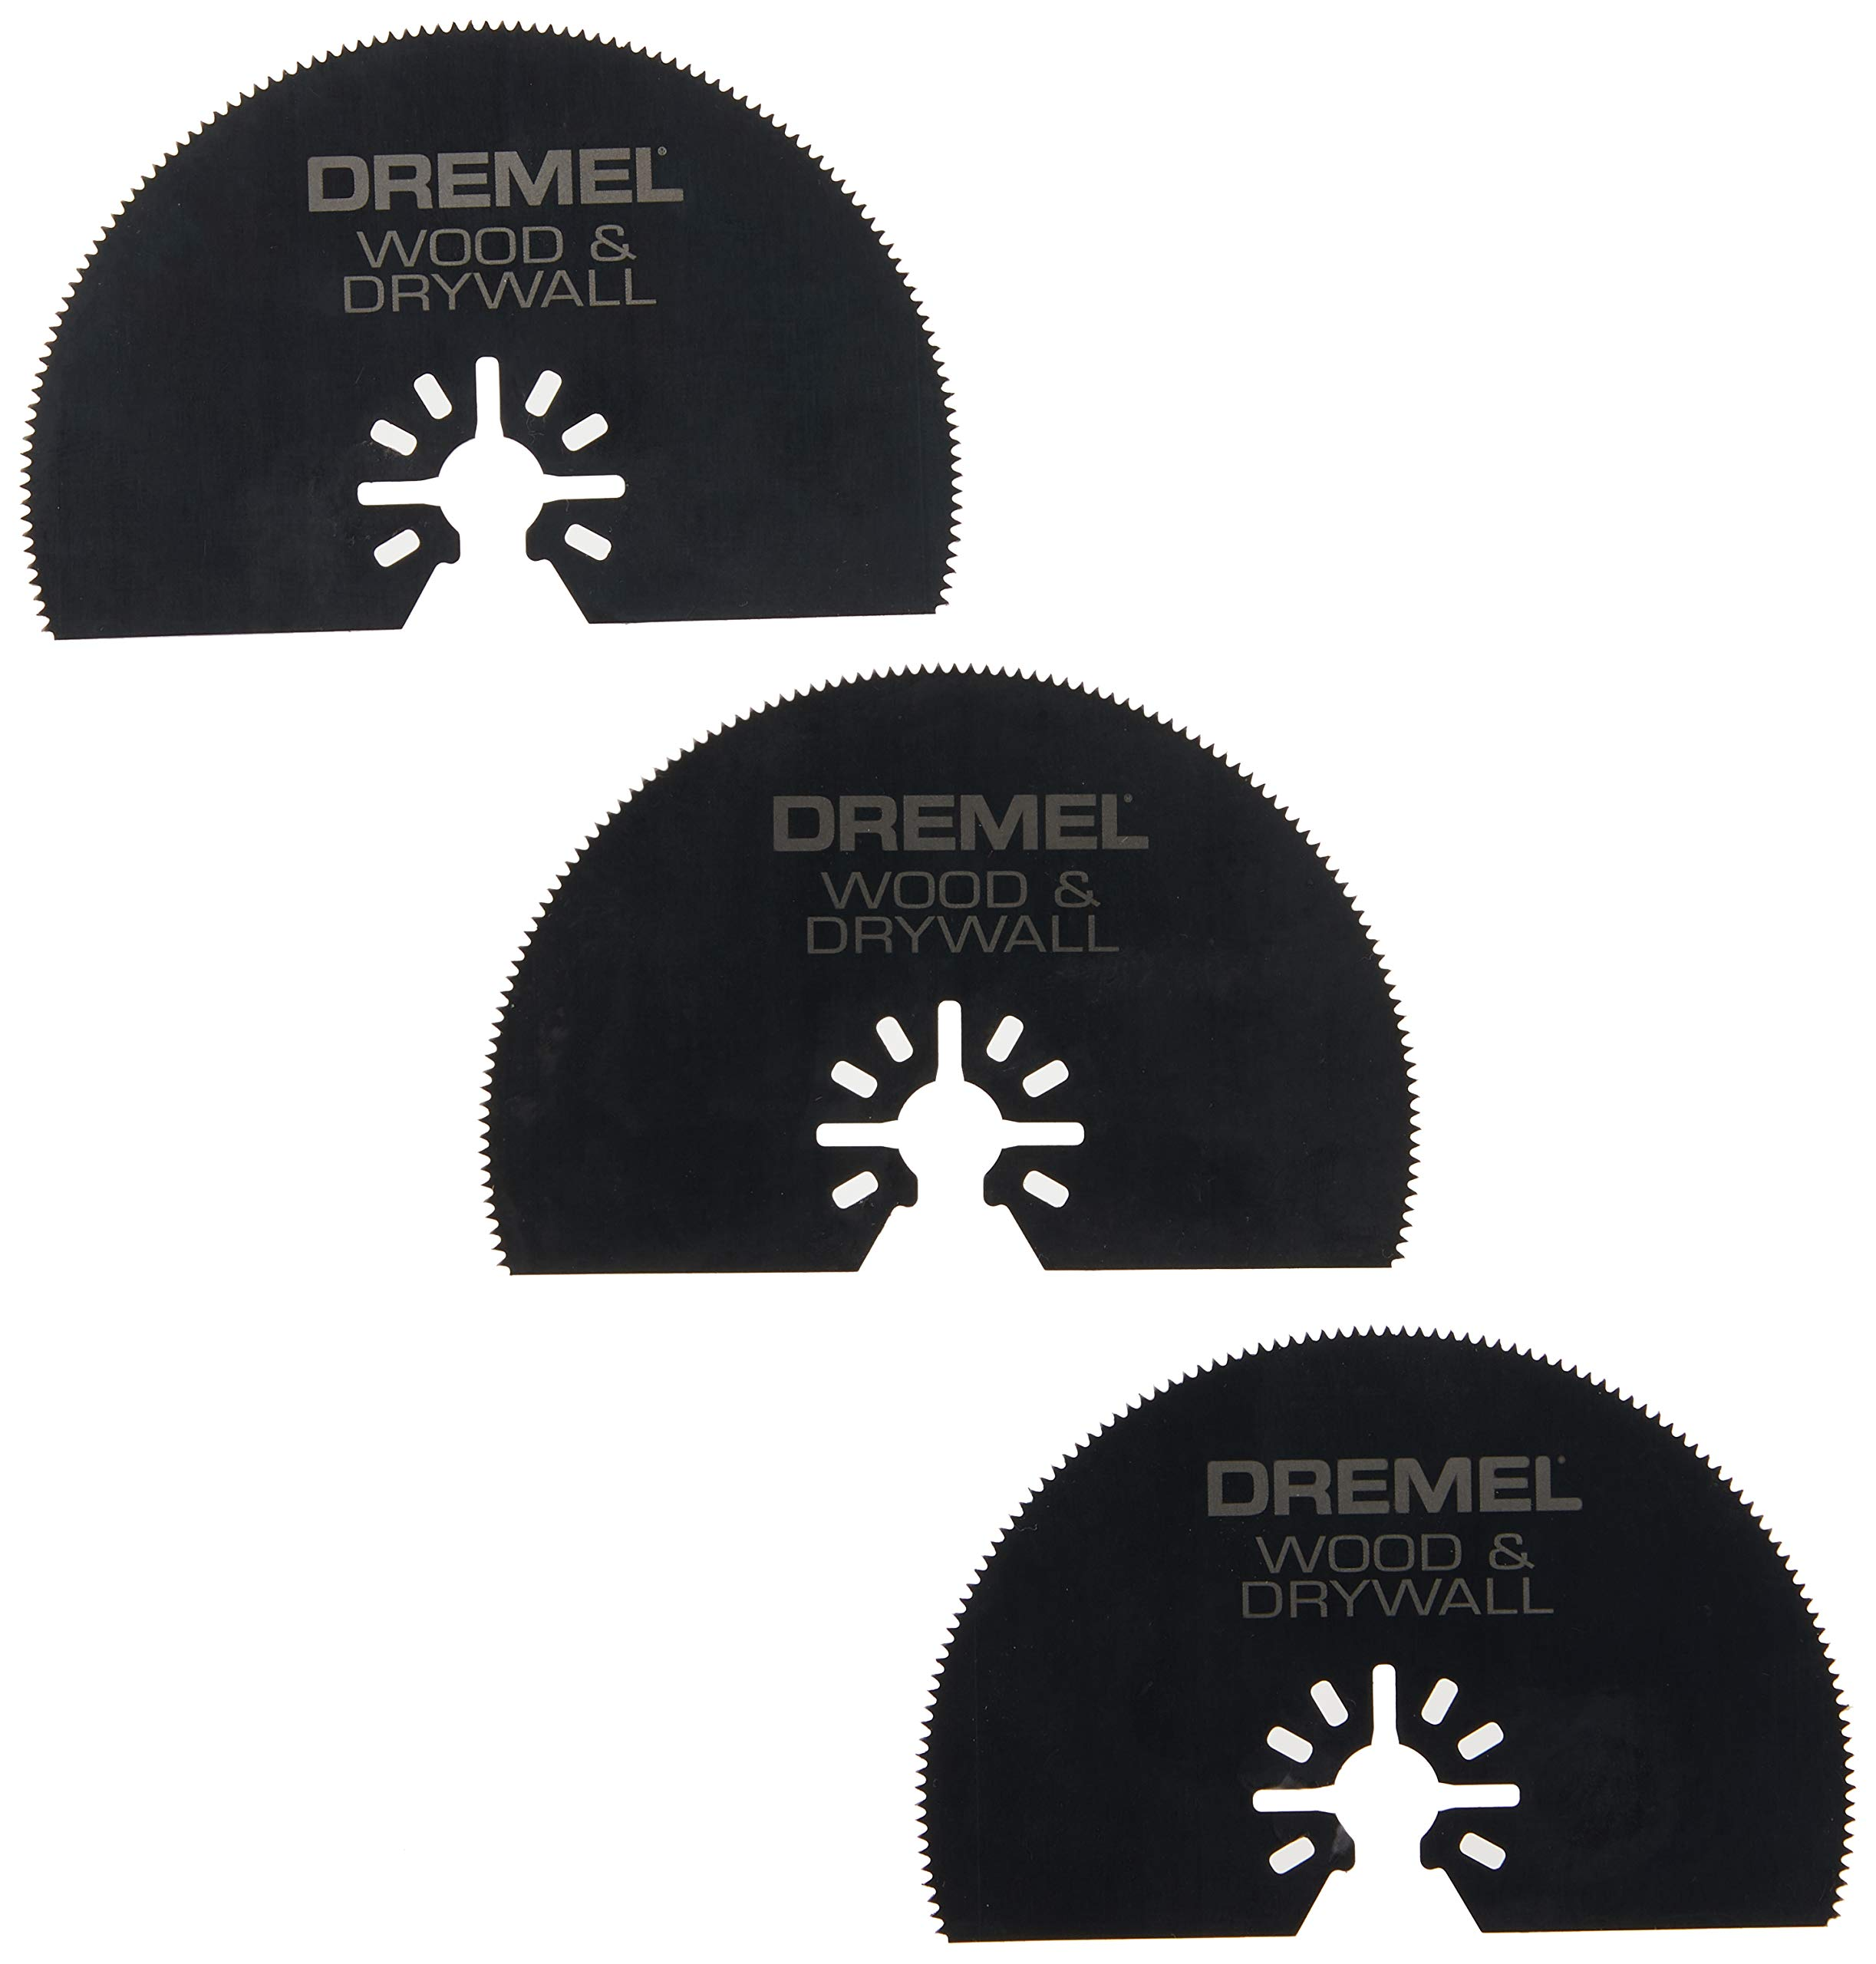 Dremel MM450B Universal Quick-Fit Multi-Max Wood Drywall Oscillating Tool Saw Blade, 3-Pack – Multi Tool Accessories- Perfect for Cutting Wood and Drywall , Black